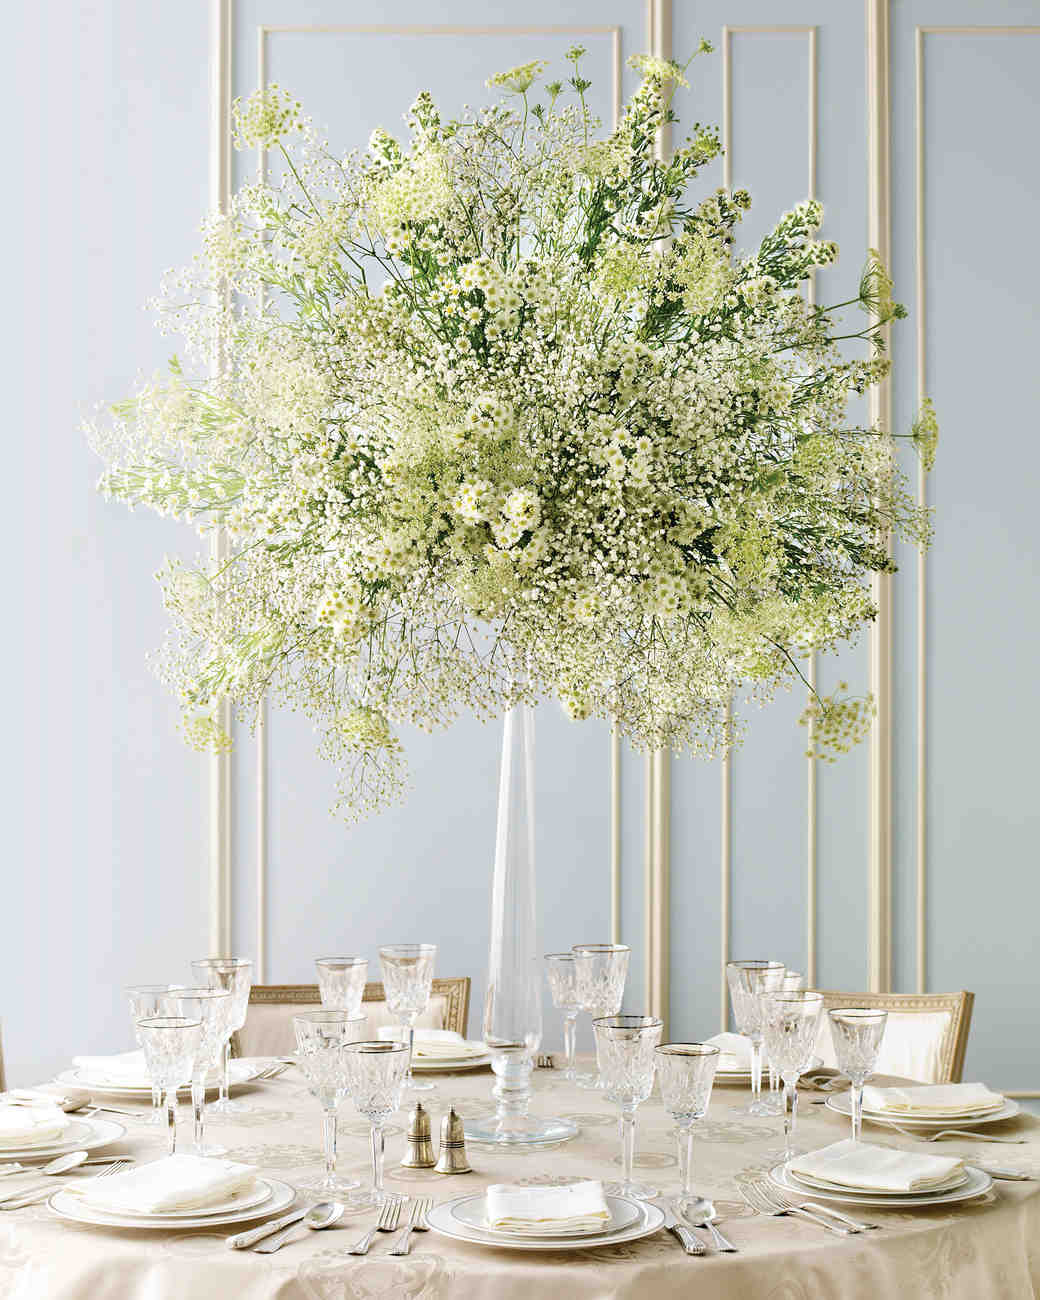 Elegant and inexpensive wedding flower ideas martha for Floral wedding decorations ideas